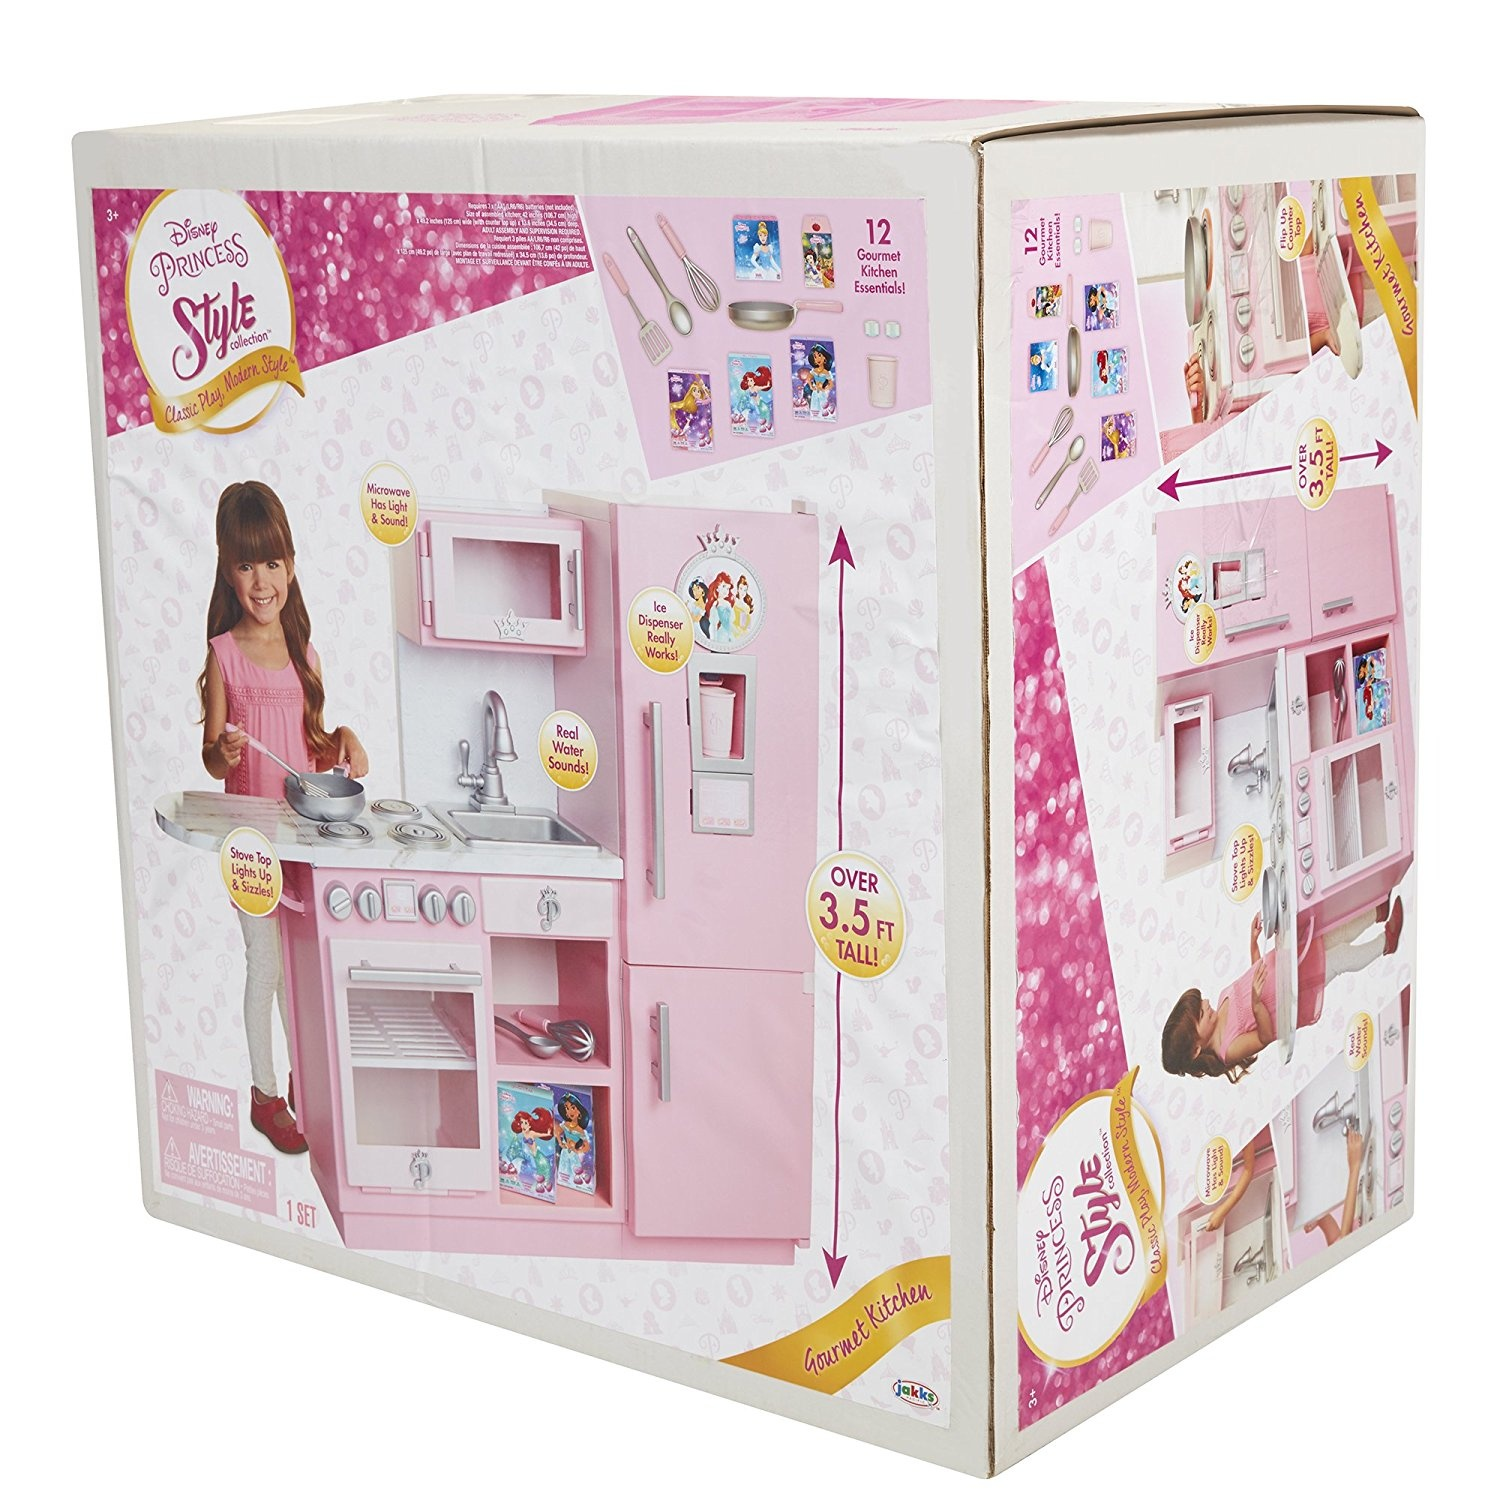 Disney Princess Style Collection Gourmet Kitchen By Disney Princess Shop Online For Toys In The United States